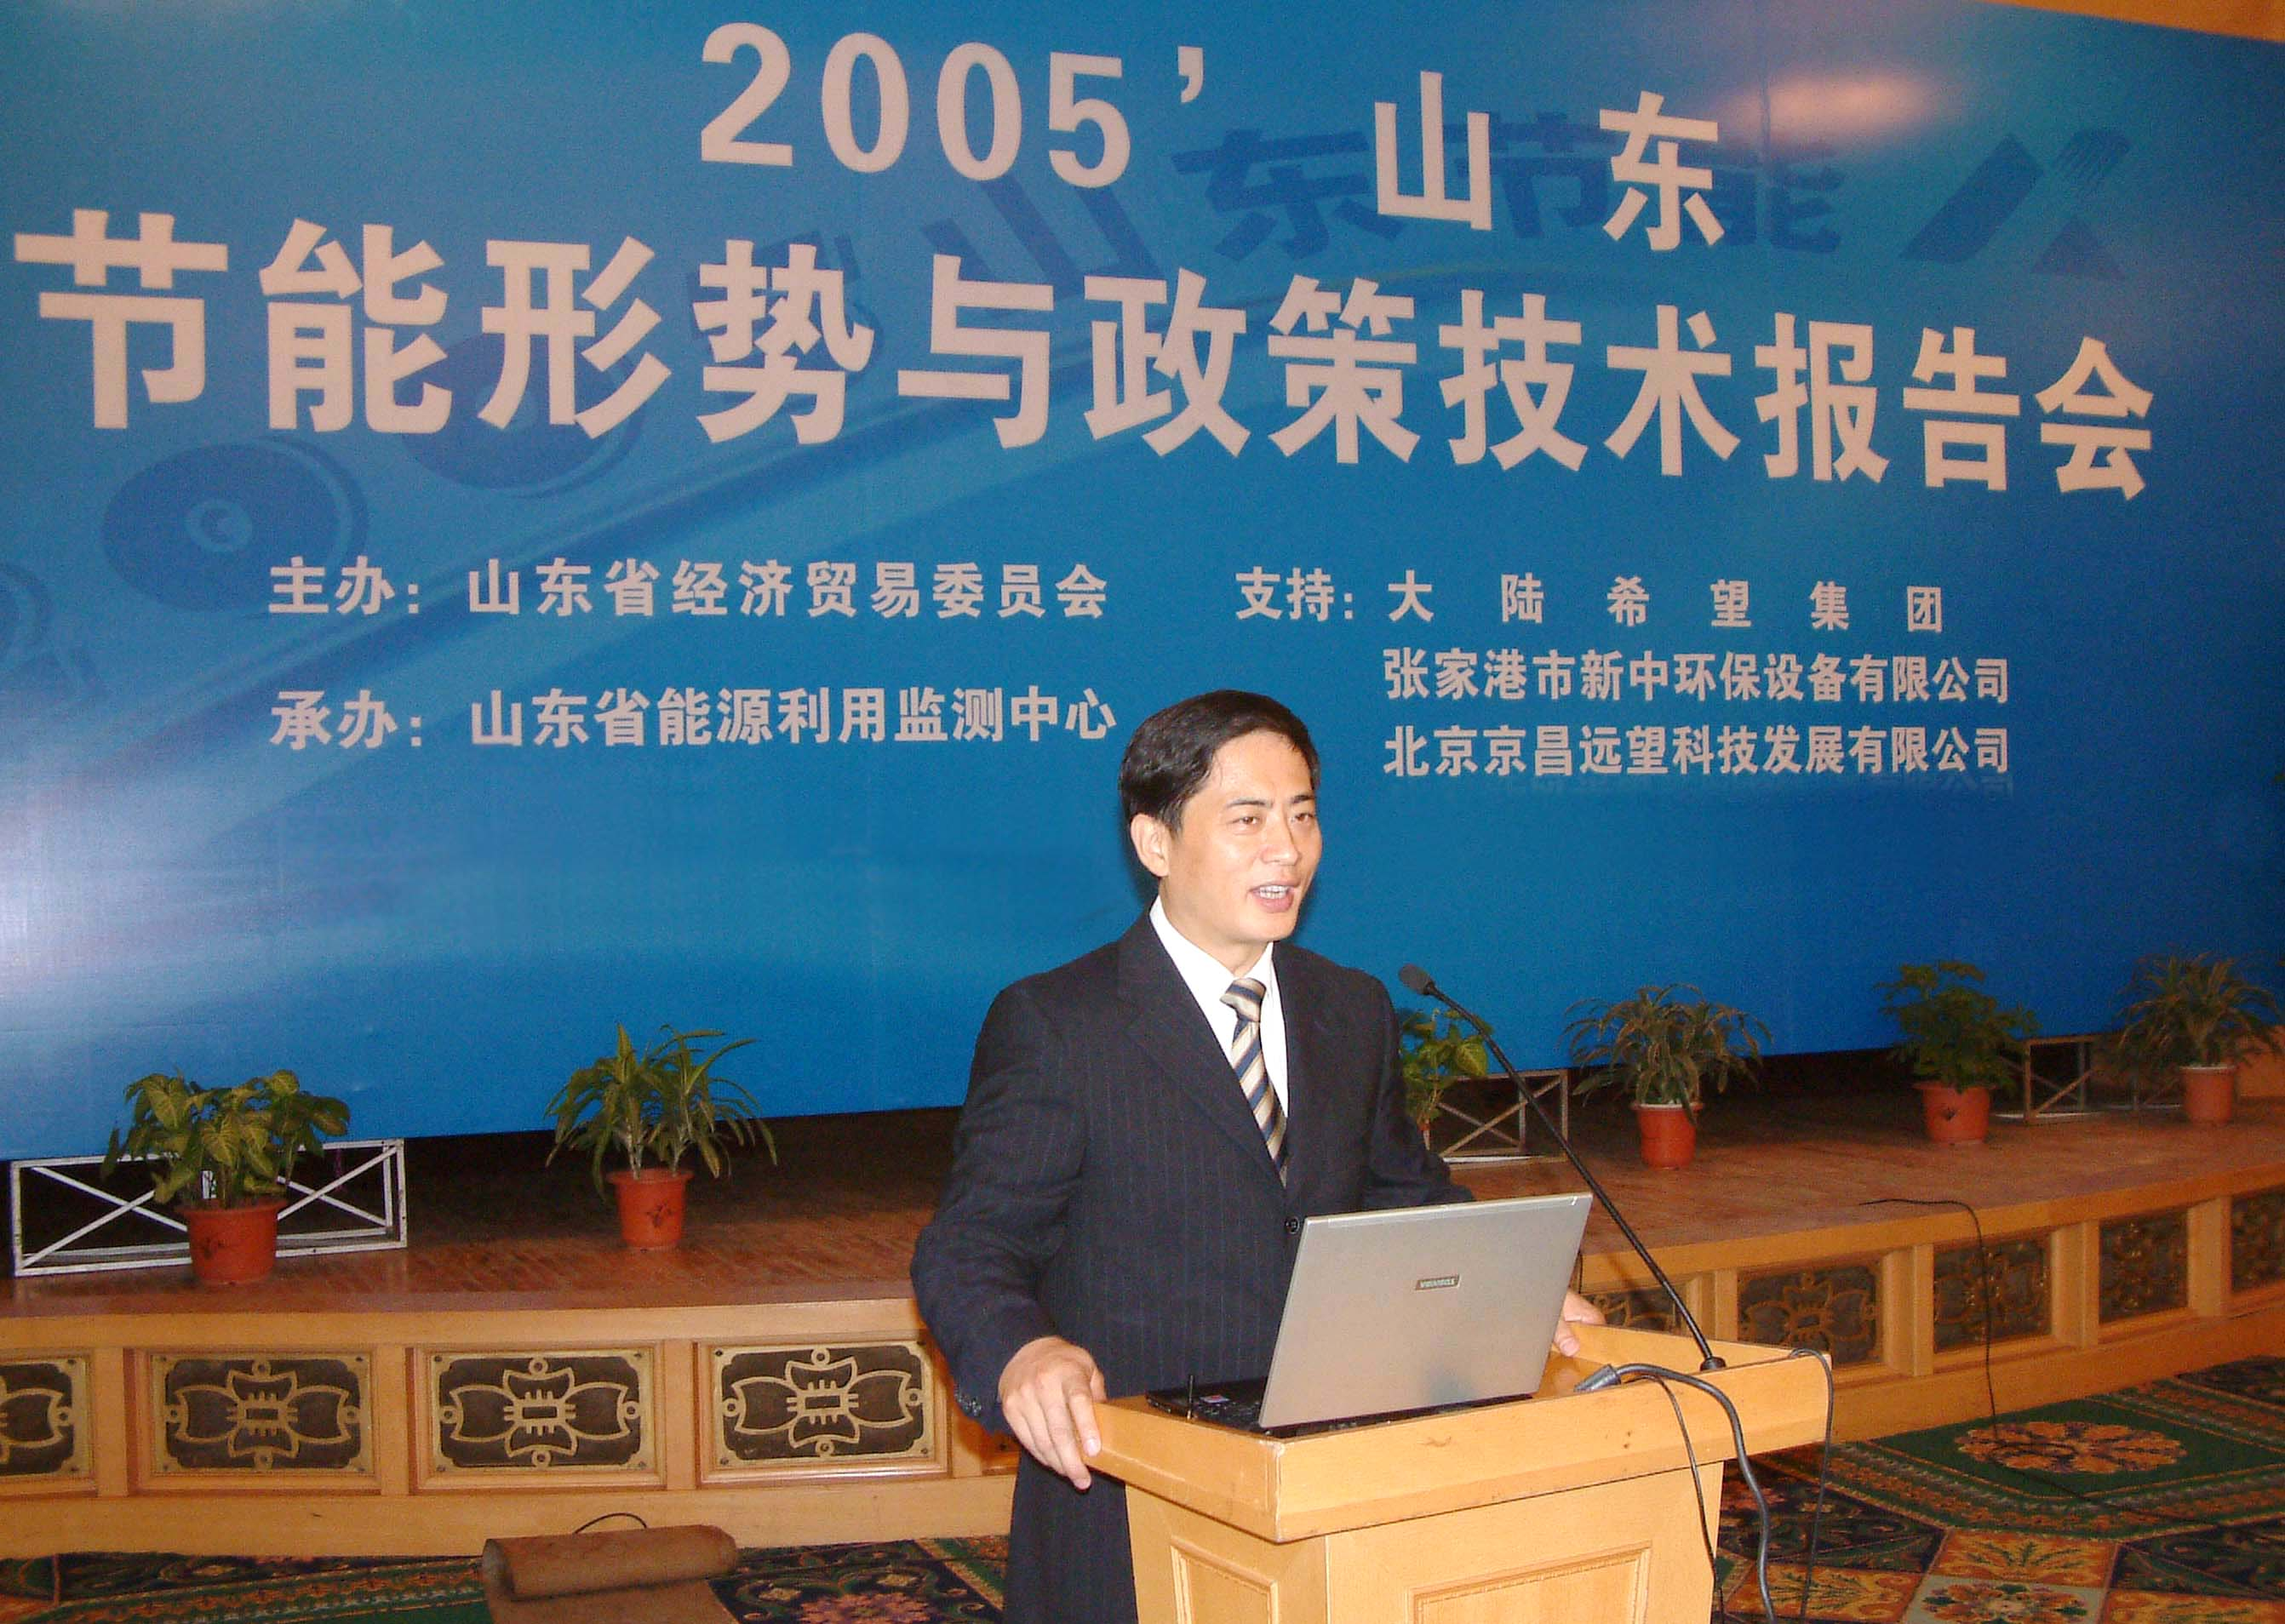 In 2005, President Bin giving a technical report in Shandong province